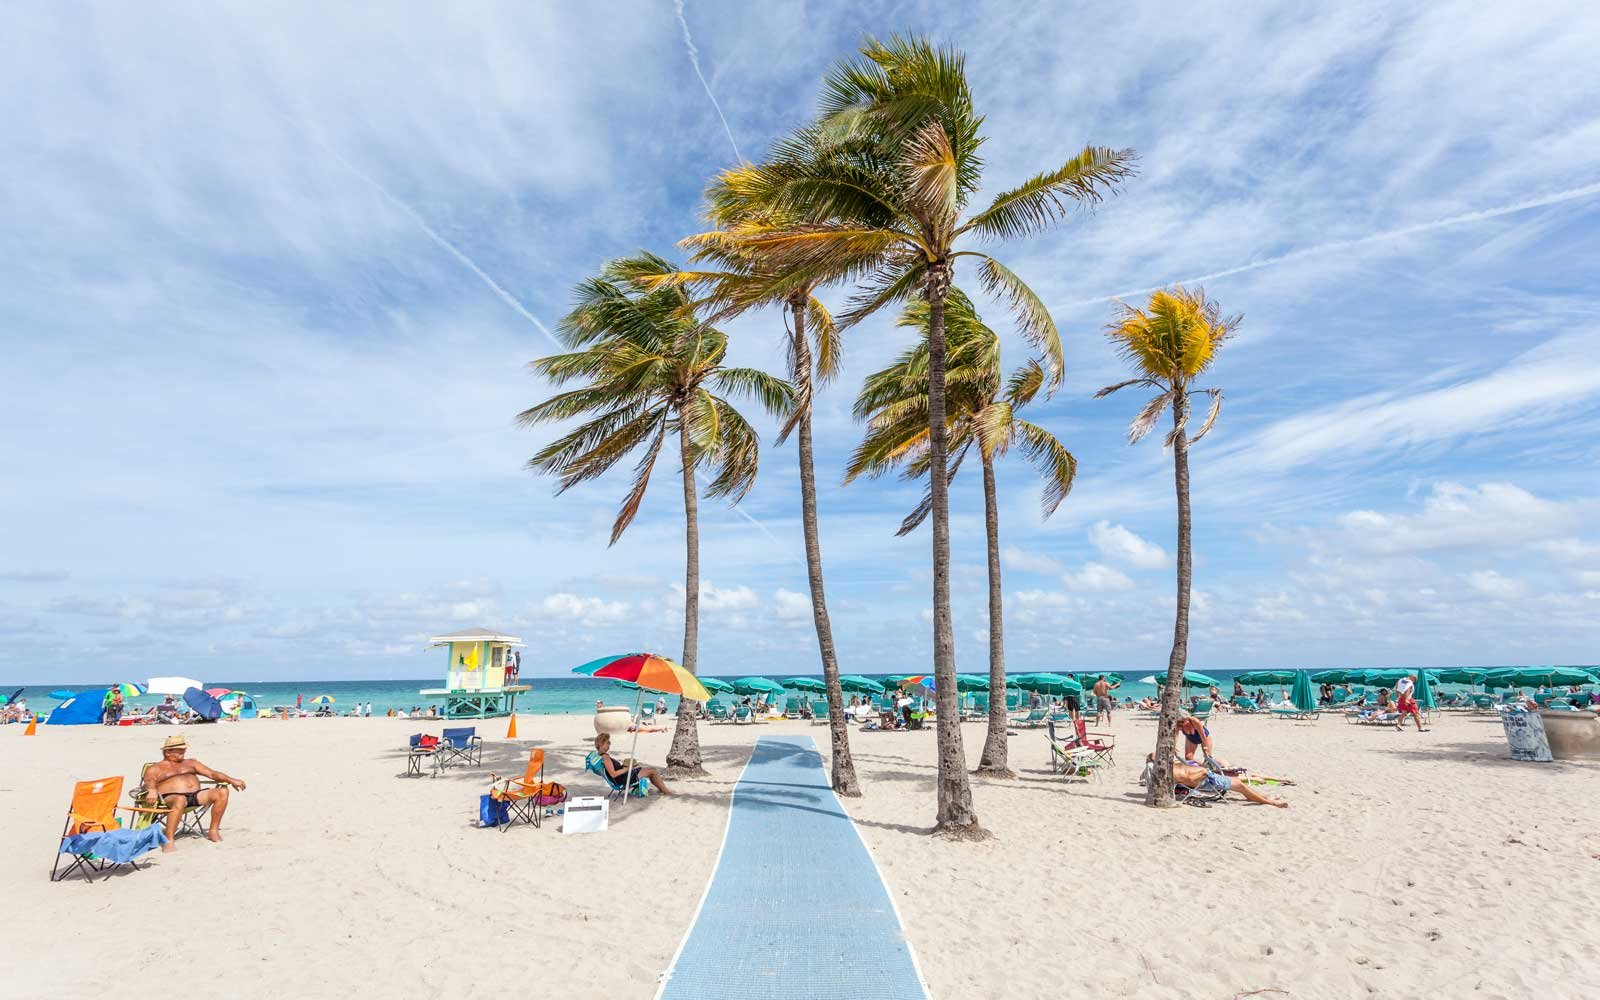 People relaxing under palm trees at the Hollywood Beach on a sunny day in March. Florida, United States